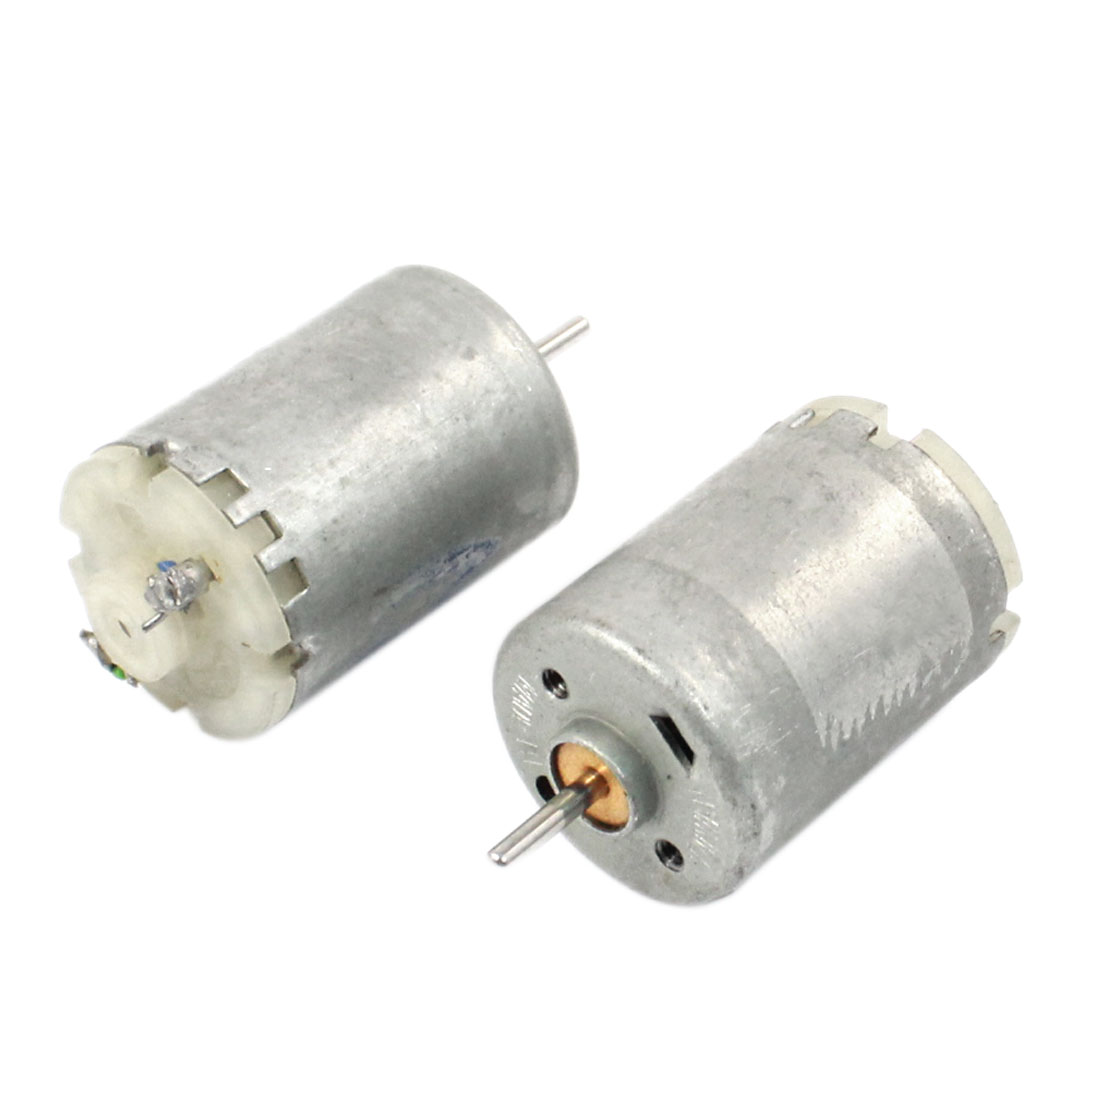 2pcs 2000RPM 3V-9V 130 Round Shape DC Micro Motor for RC DIY Model Aircraft